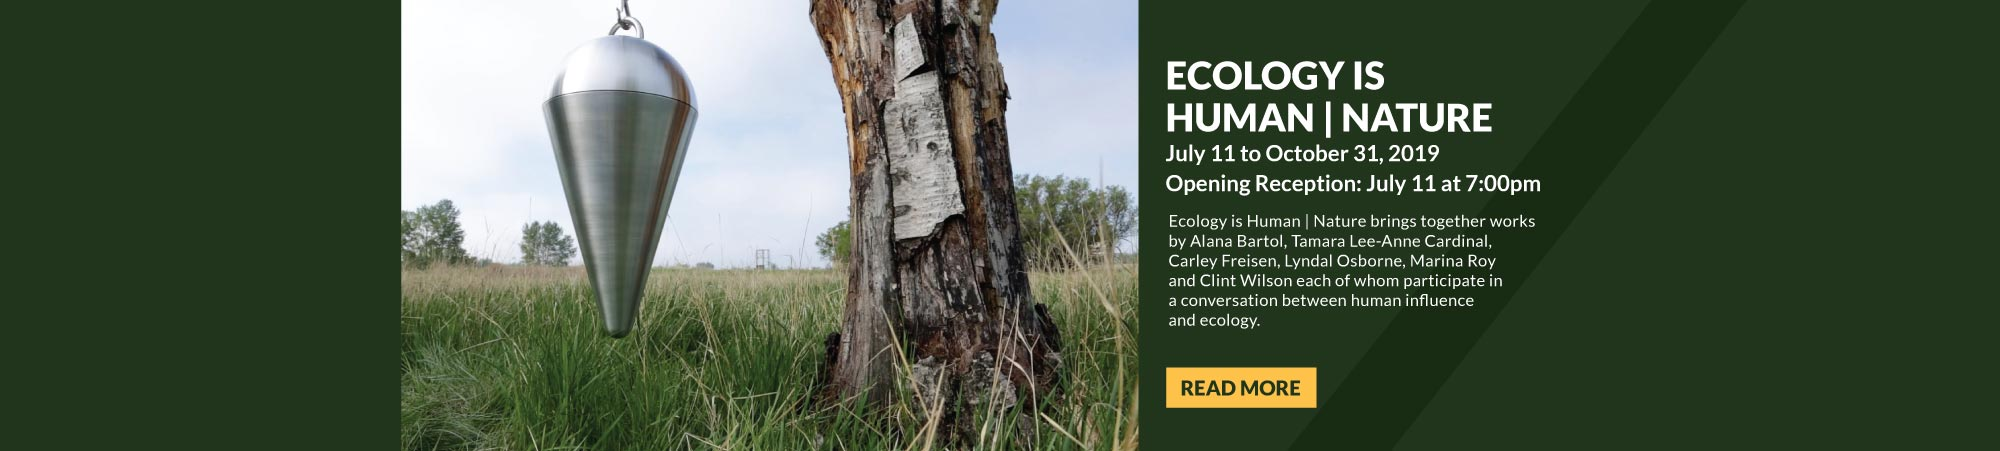 Ecology is Human | Nature